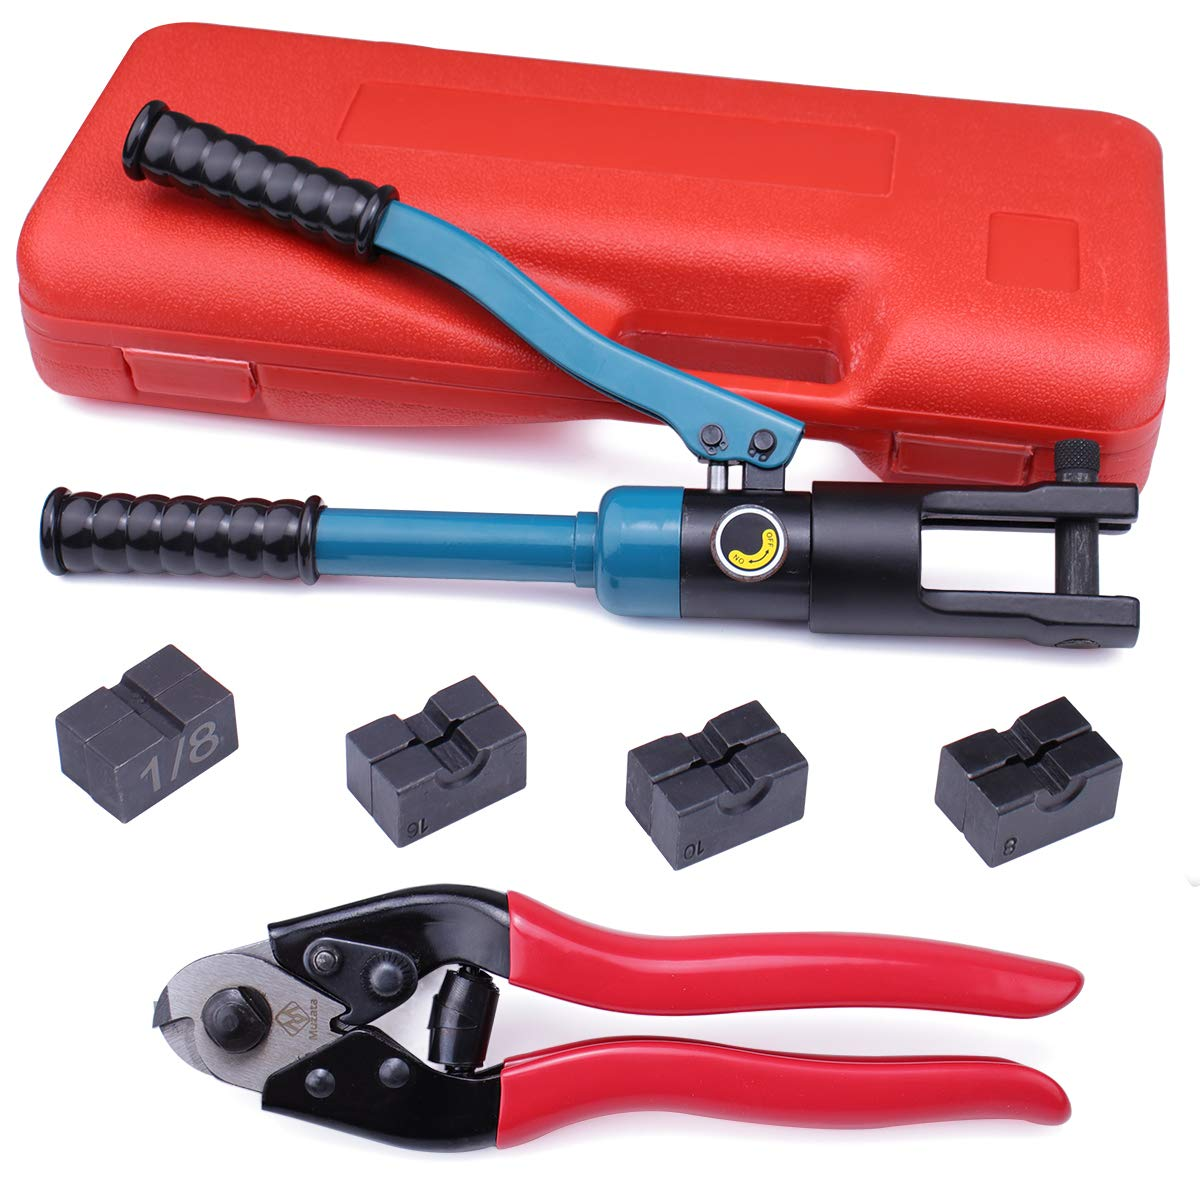 Muzata Custom Hydraulic Hand Crimper Tool for 1/8'' Stainless Steel Cable Railing Kit System Fittings- Wire Rope Swaging,2019 Upgrade Version Crimping-60 Ton with Cutter by Muzata